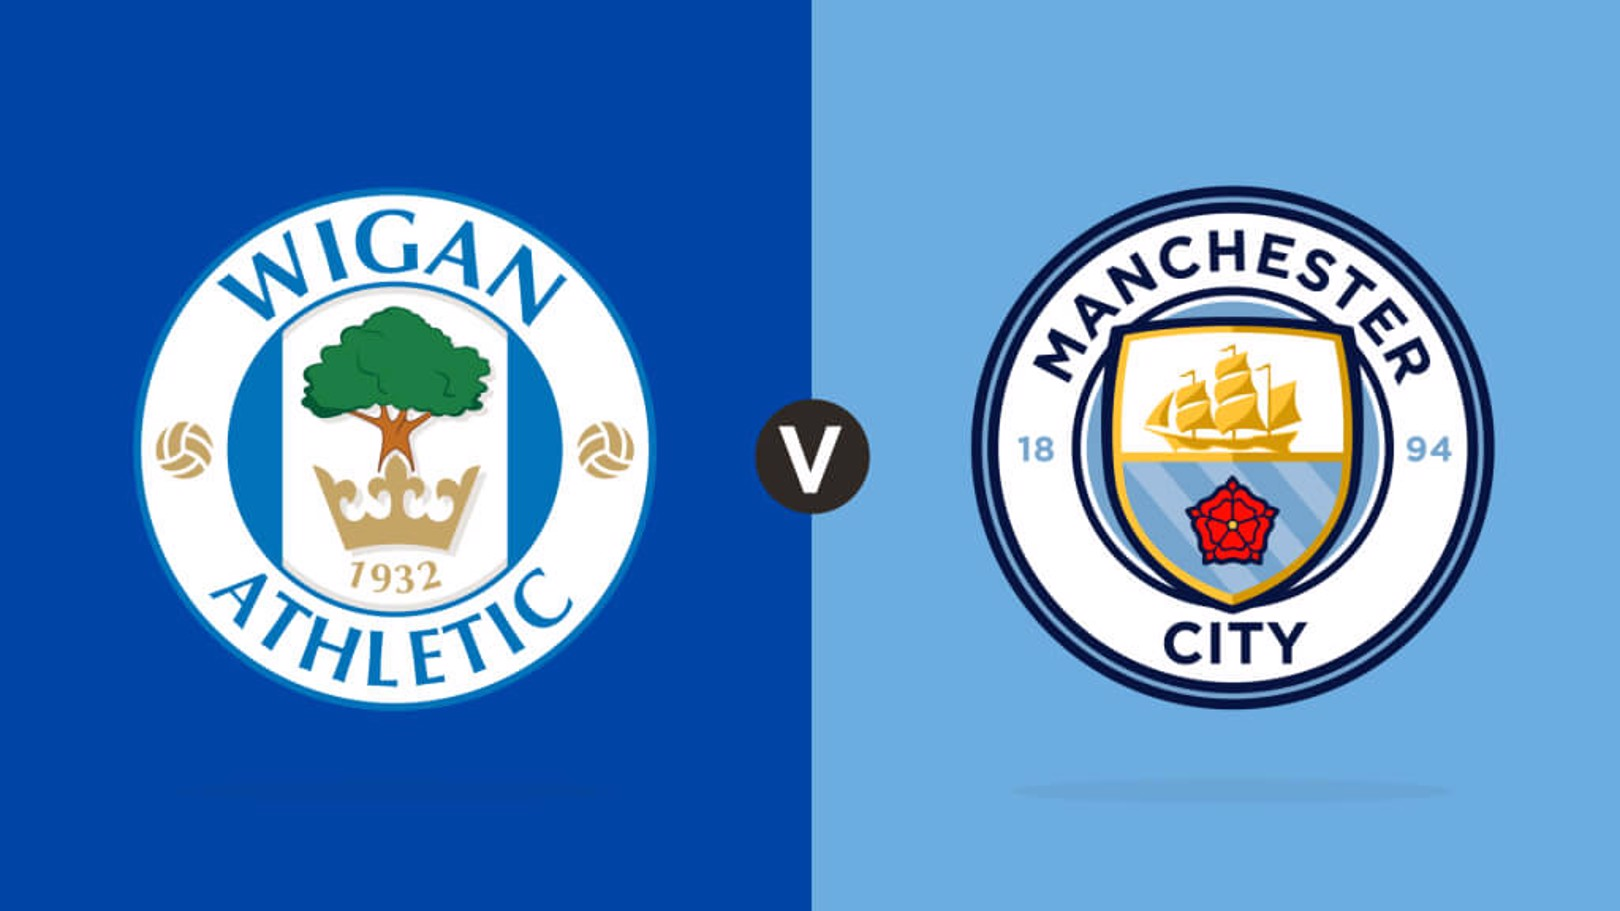 Wigan Athletic v Manchester City